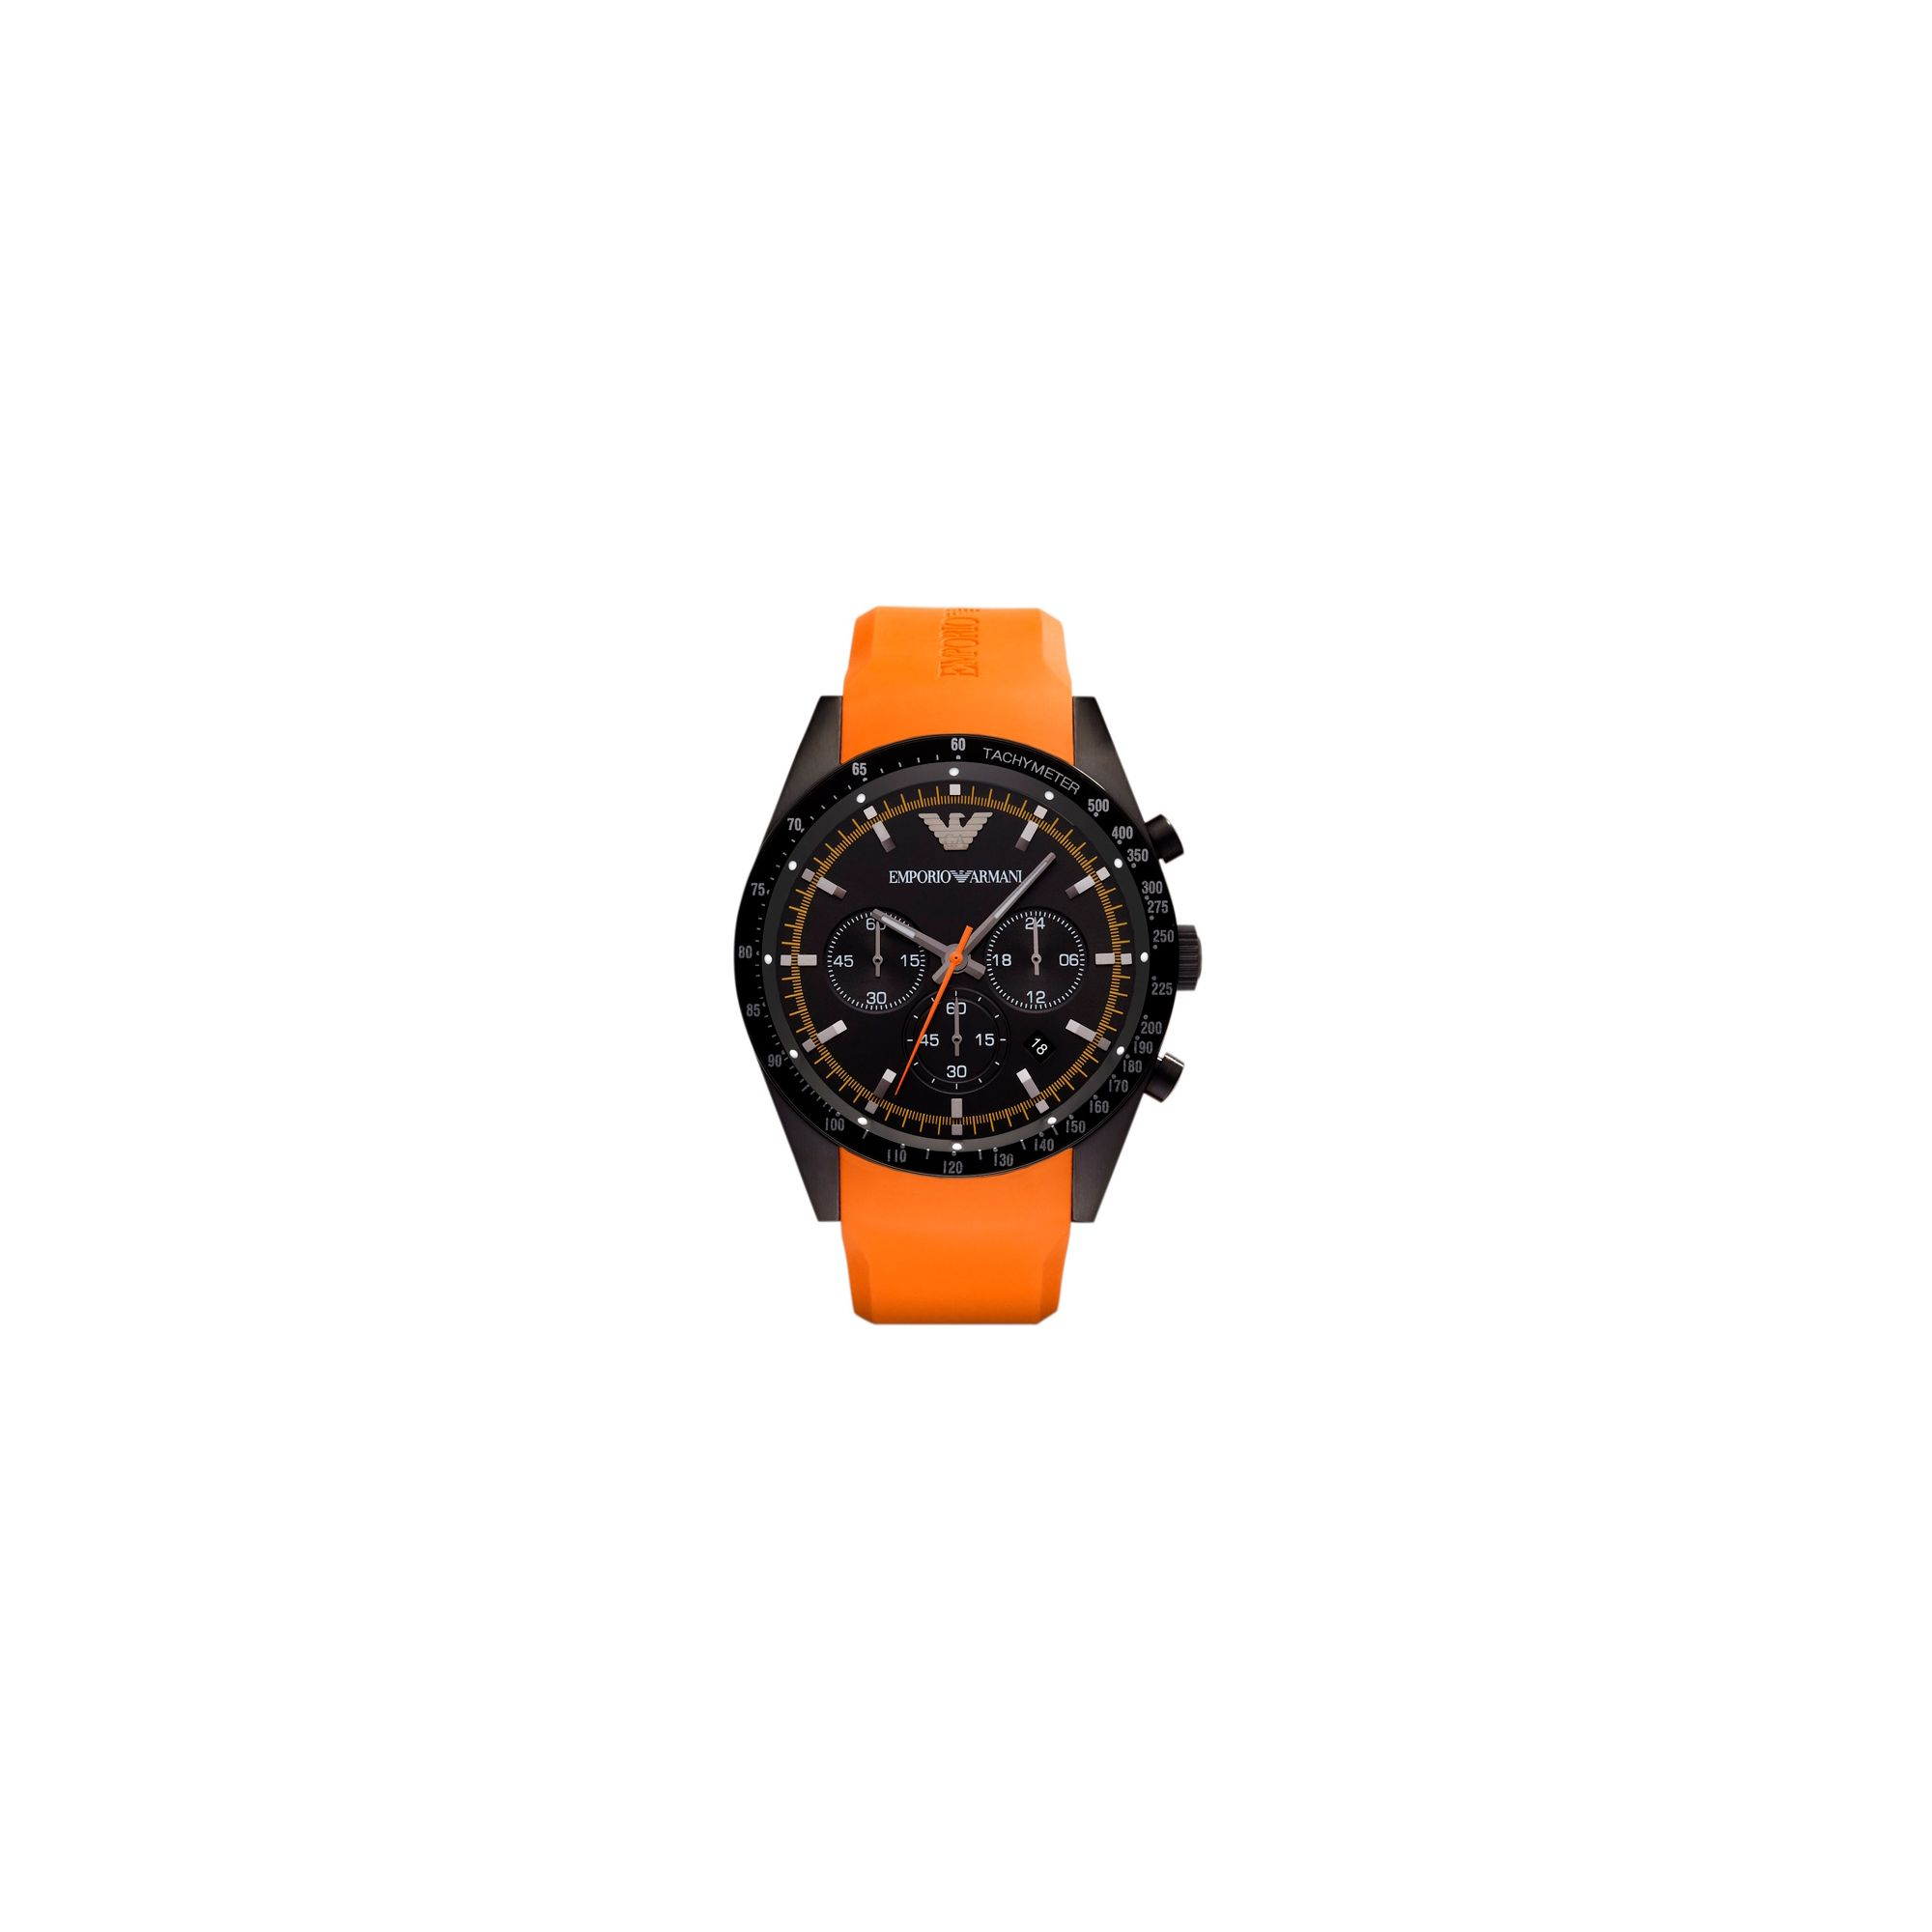 Emporio Armani Gents Chronograph Orange Rubber Strap Watch AR5987 at Tesco Direct